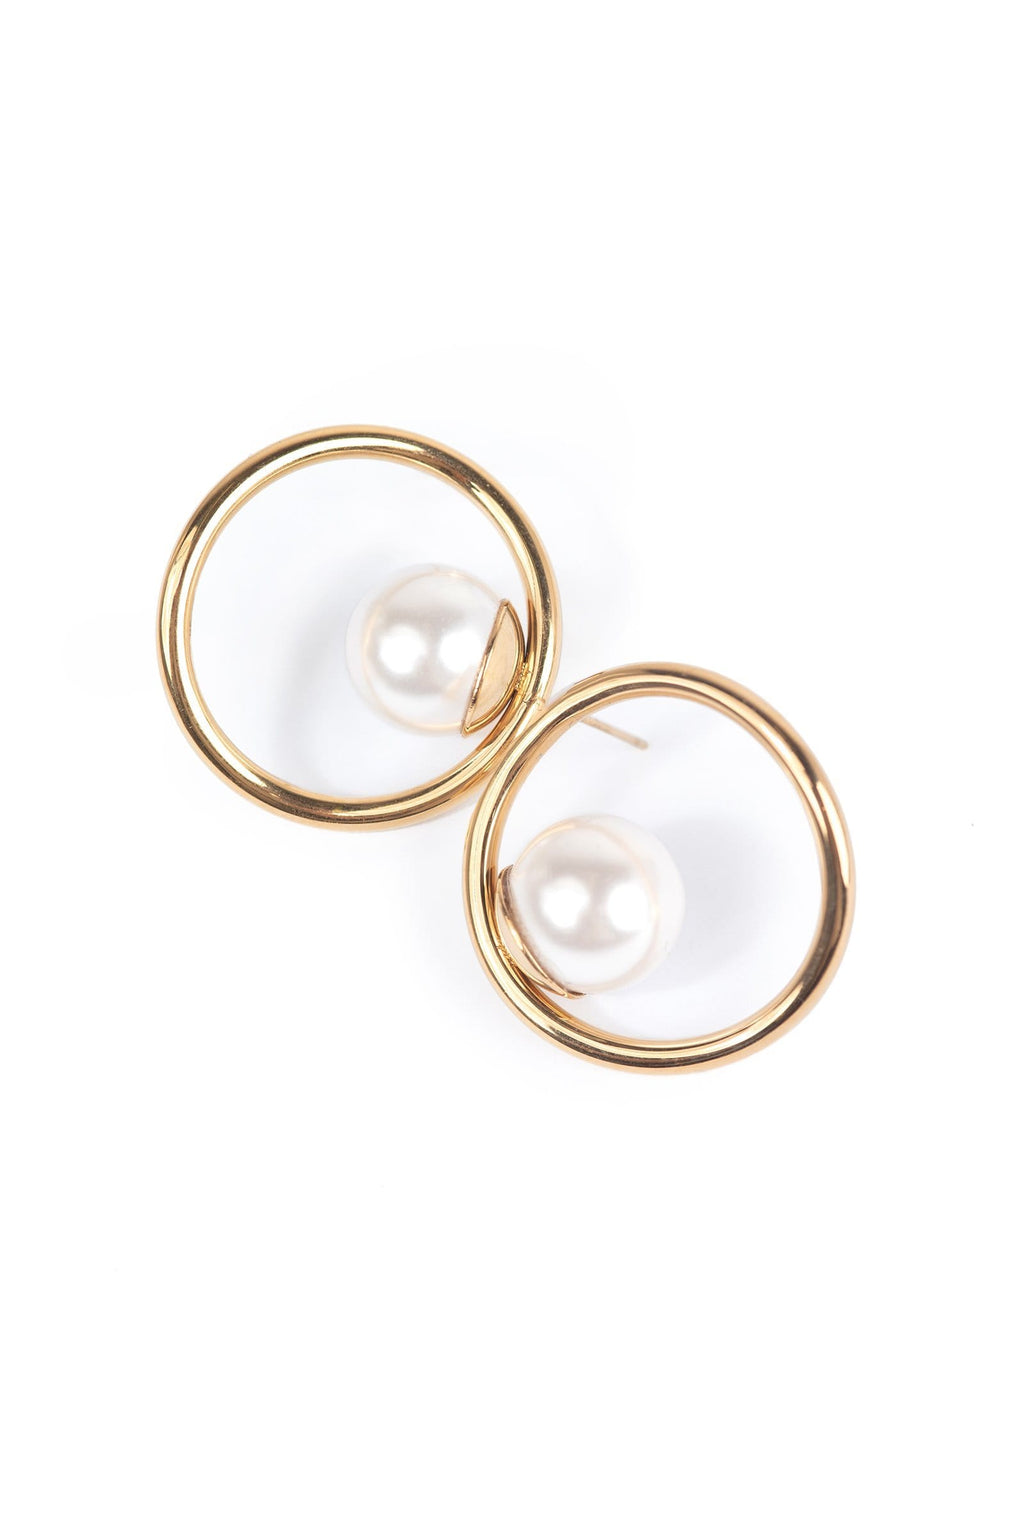 Curveball Earrings by J.ING women's accessories